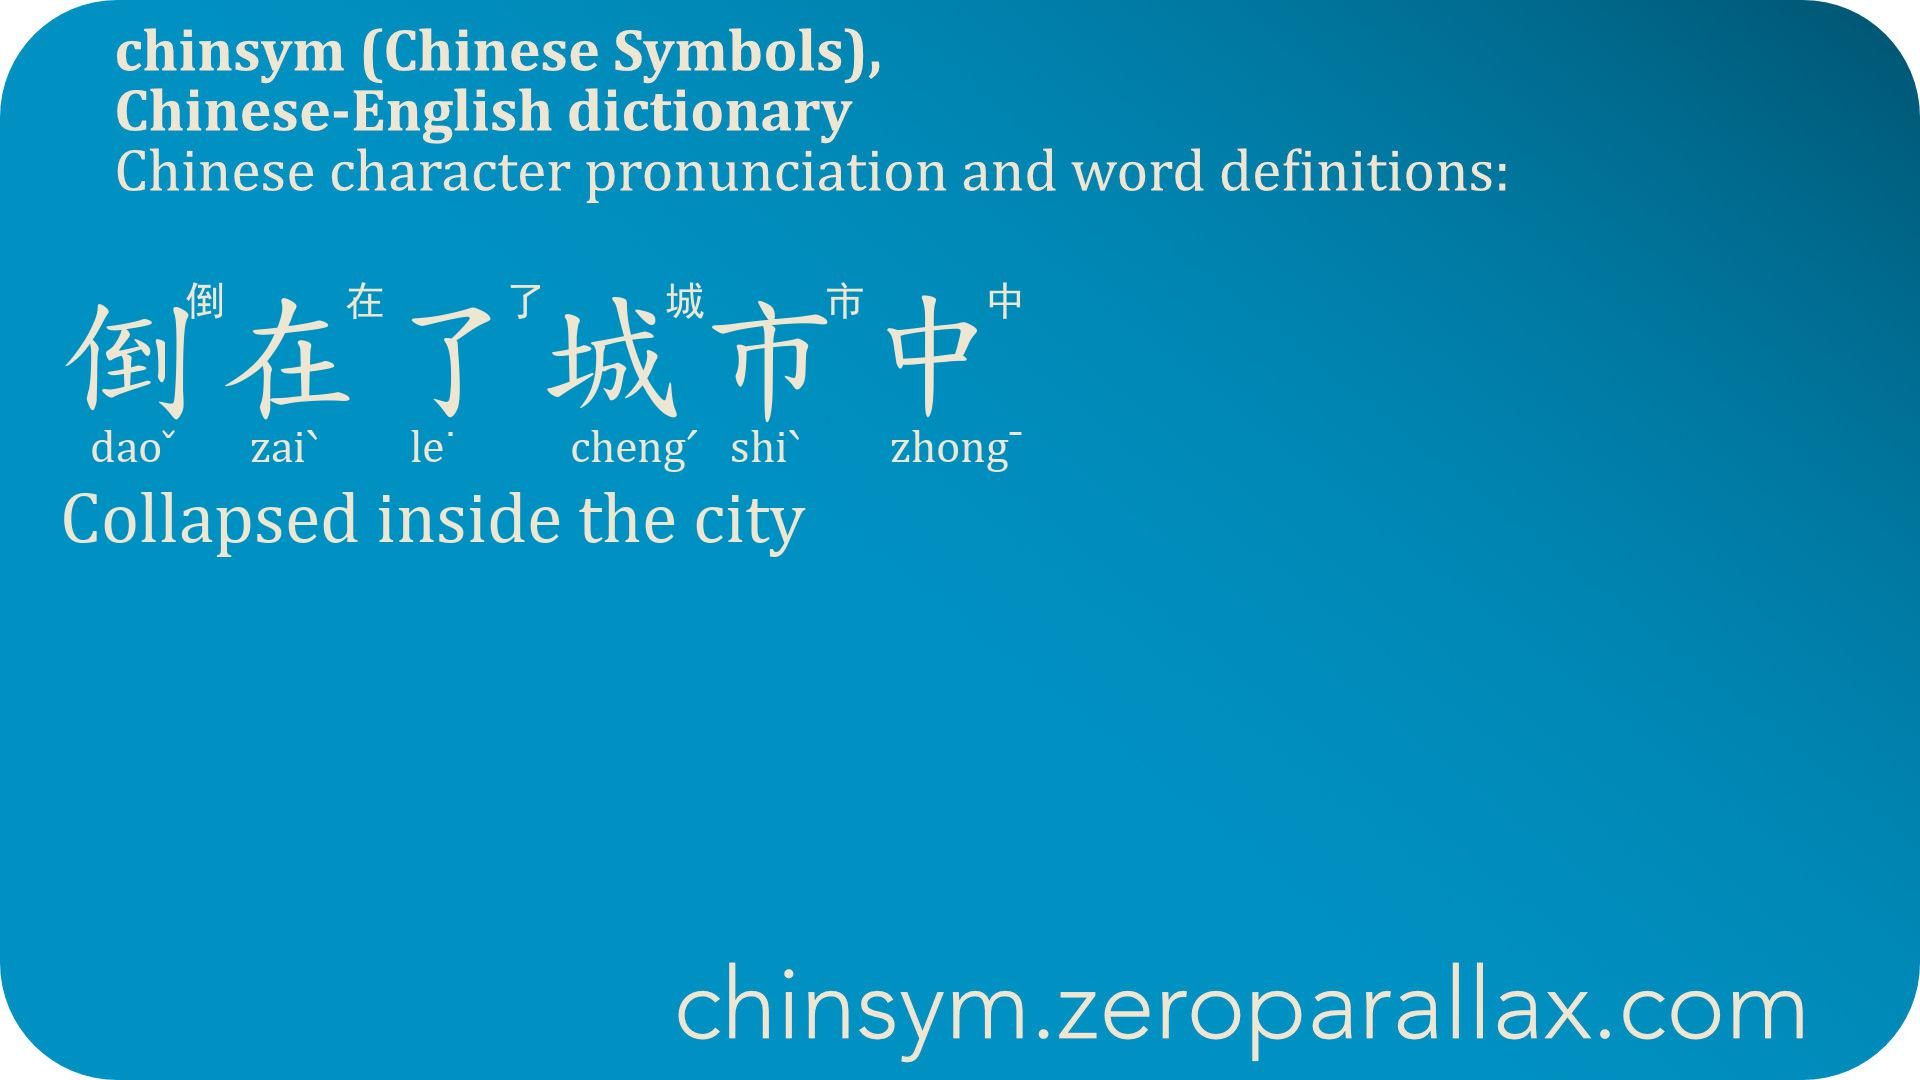 倒在了城市中  (daoˇ zaiˋ le˙ chengˊ shiˋ zhong¯) : Collapsed inside the city. chinsym.zeroparallax.com